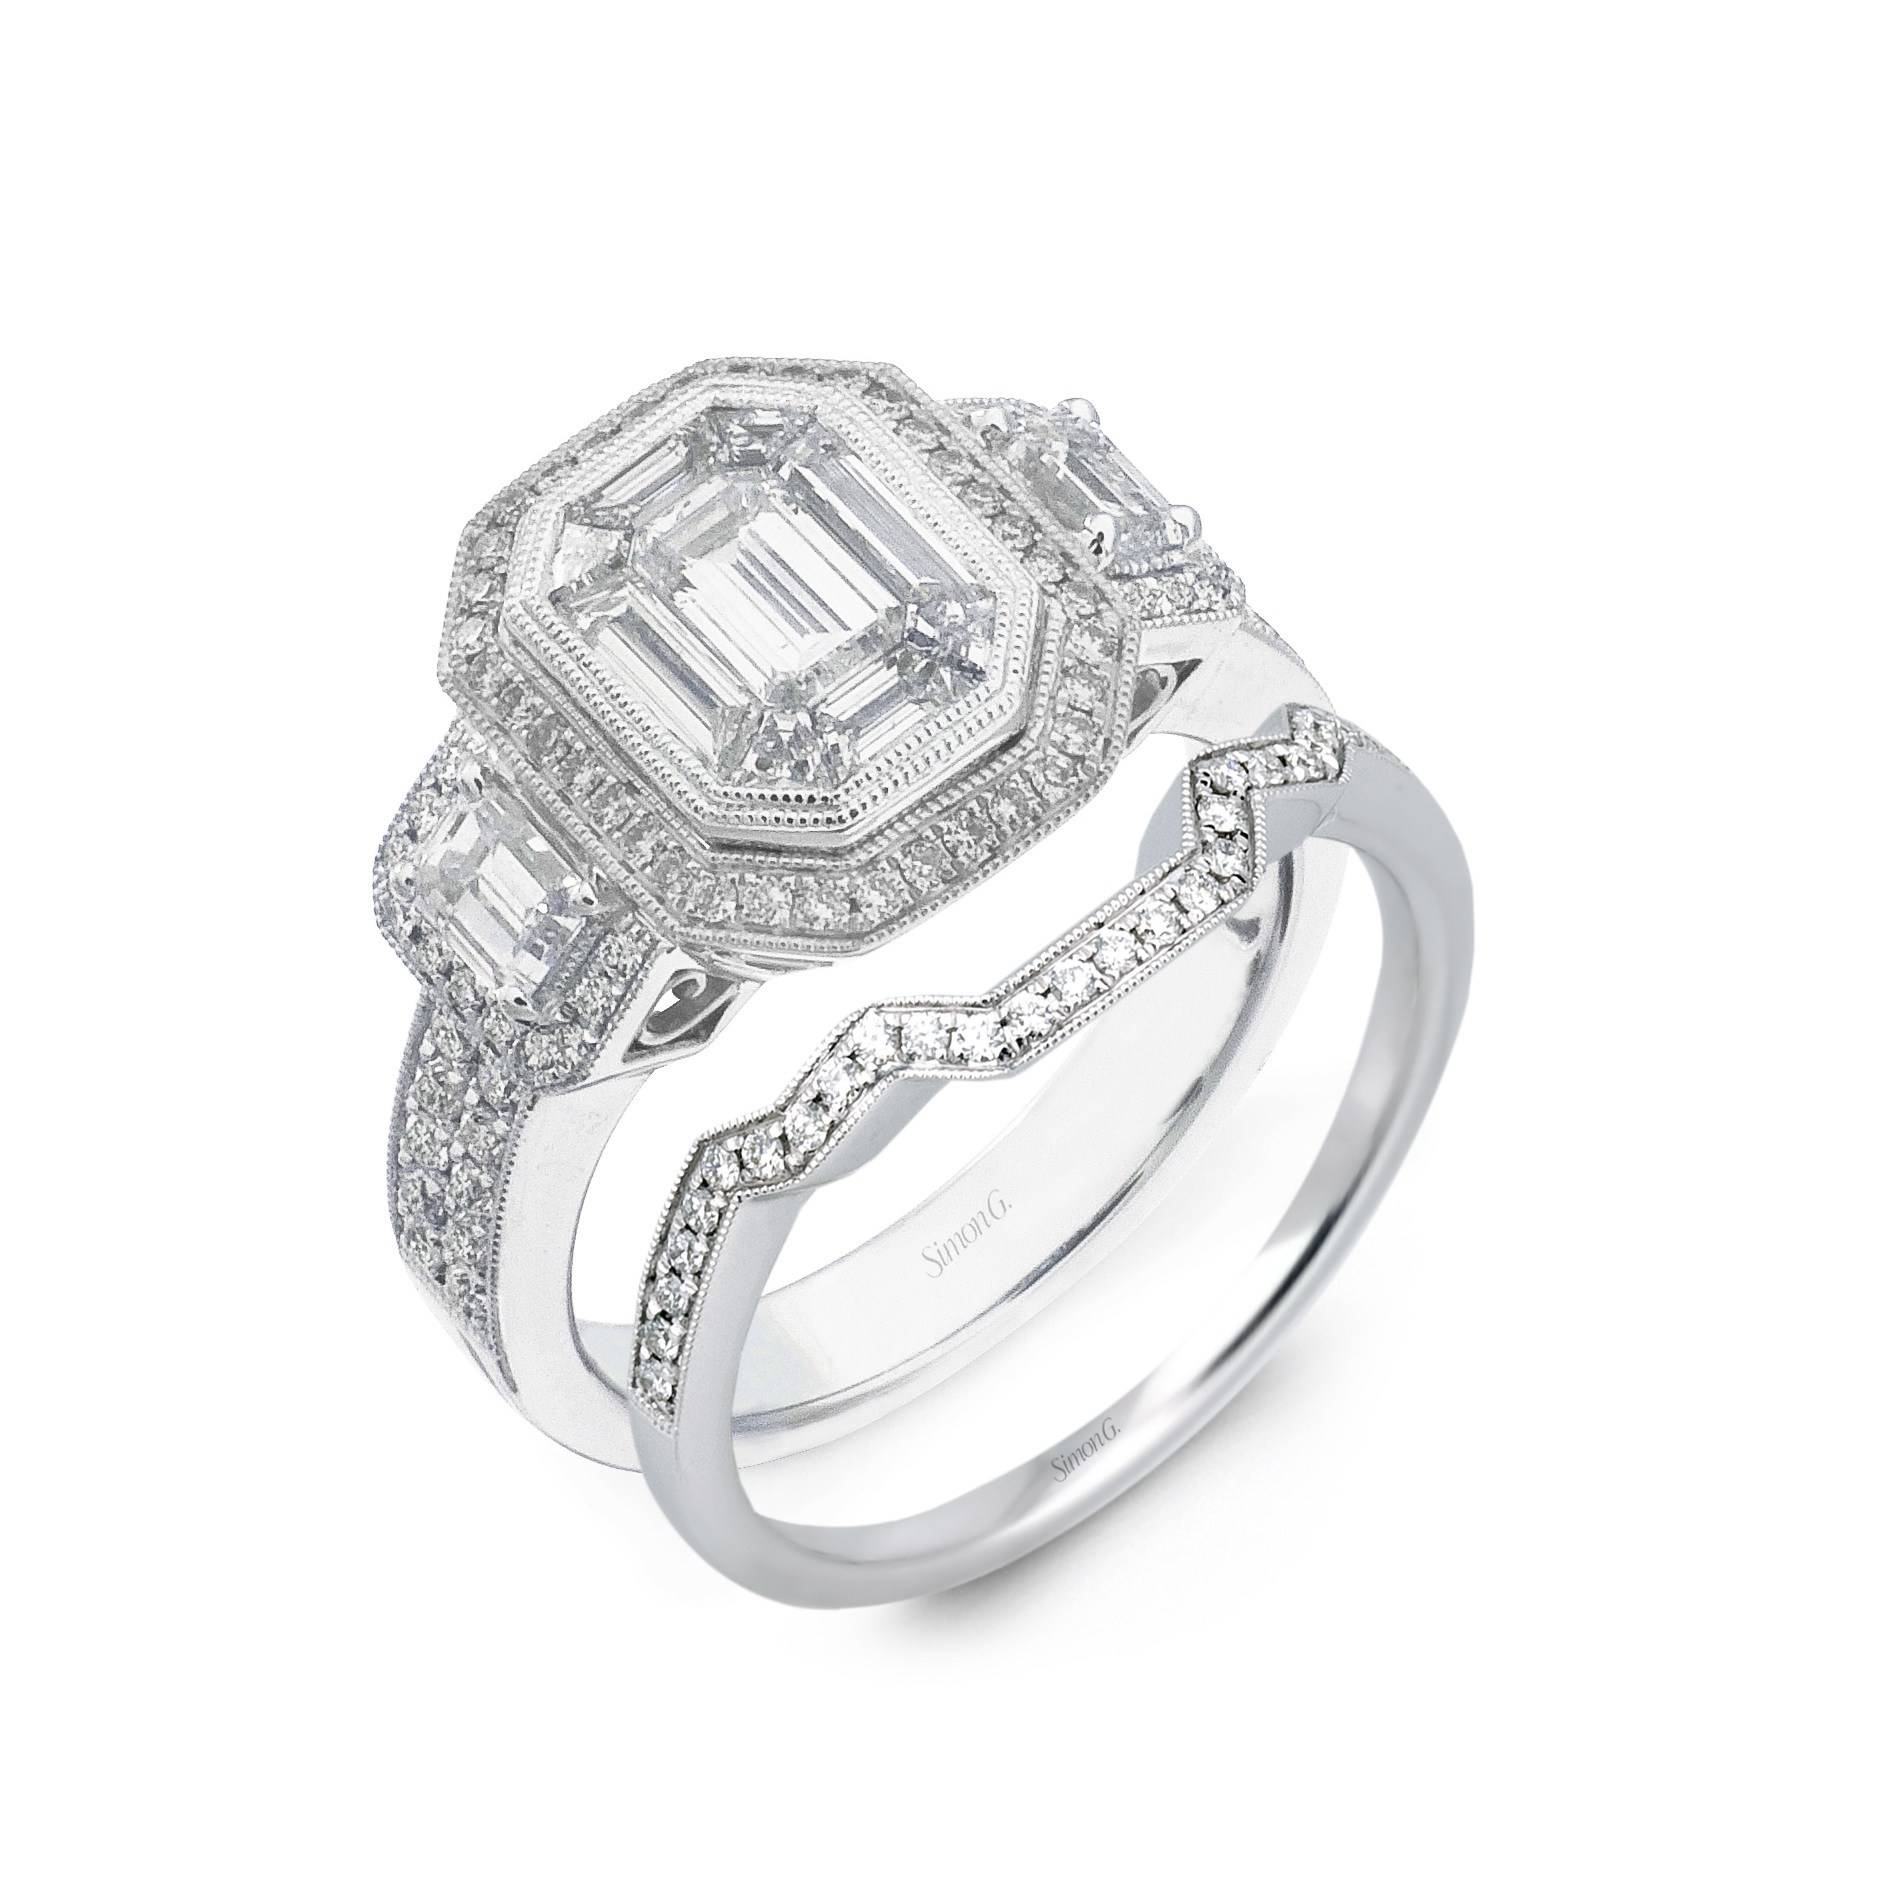 Engagement Rings : Wedding Band To Match Engagement Ring Stunning For Engagement Rings Bands (View 5 of 15)